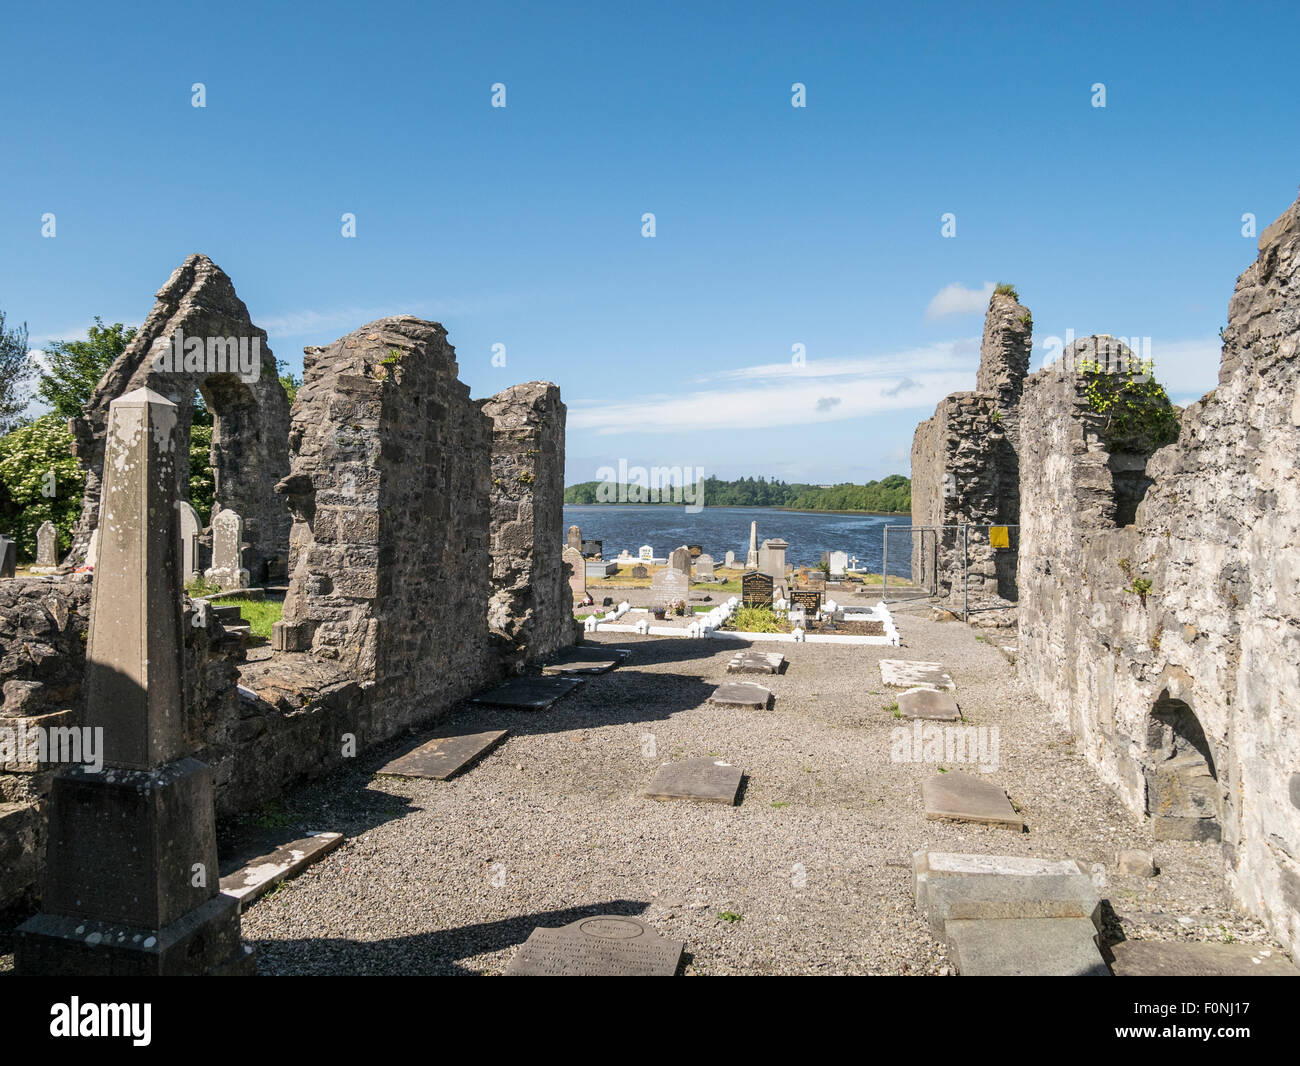 Donegal Friary founded by Franciscan Friars in 1474 Ireland - Stock Image